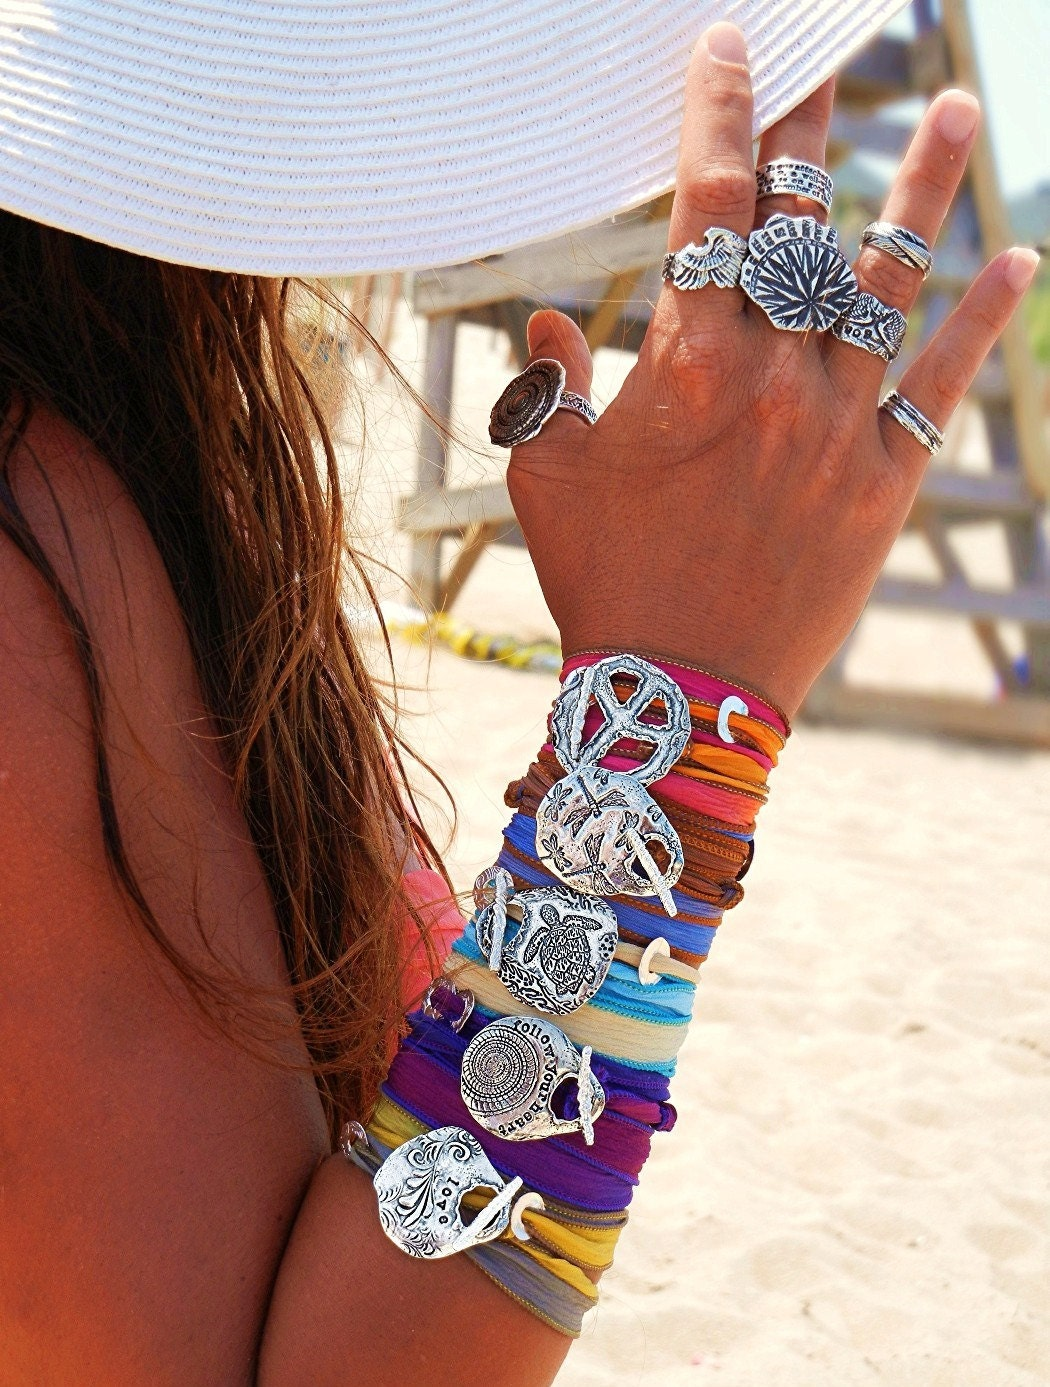 Jewelry and Accessories for Your Festival Summer